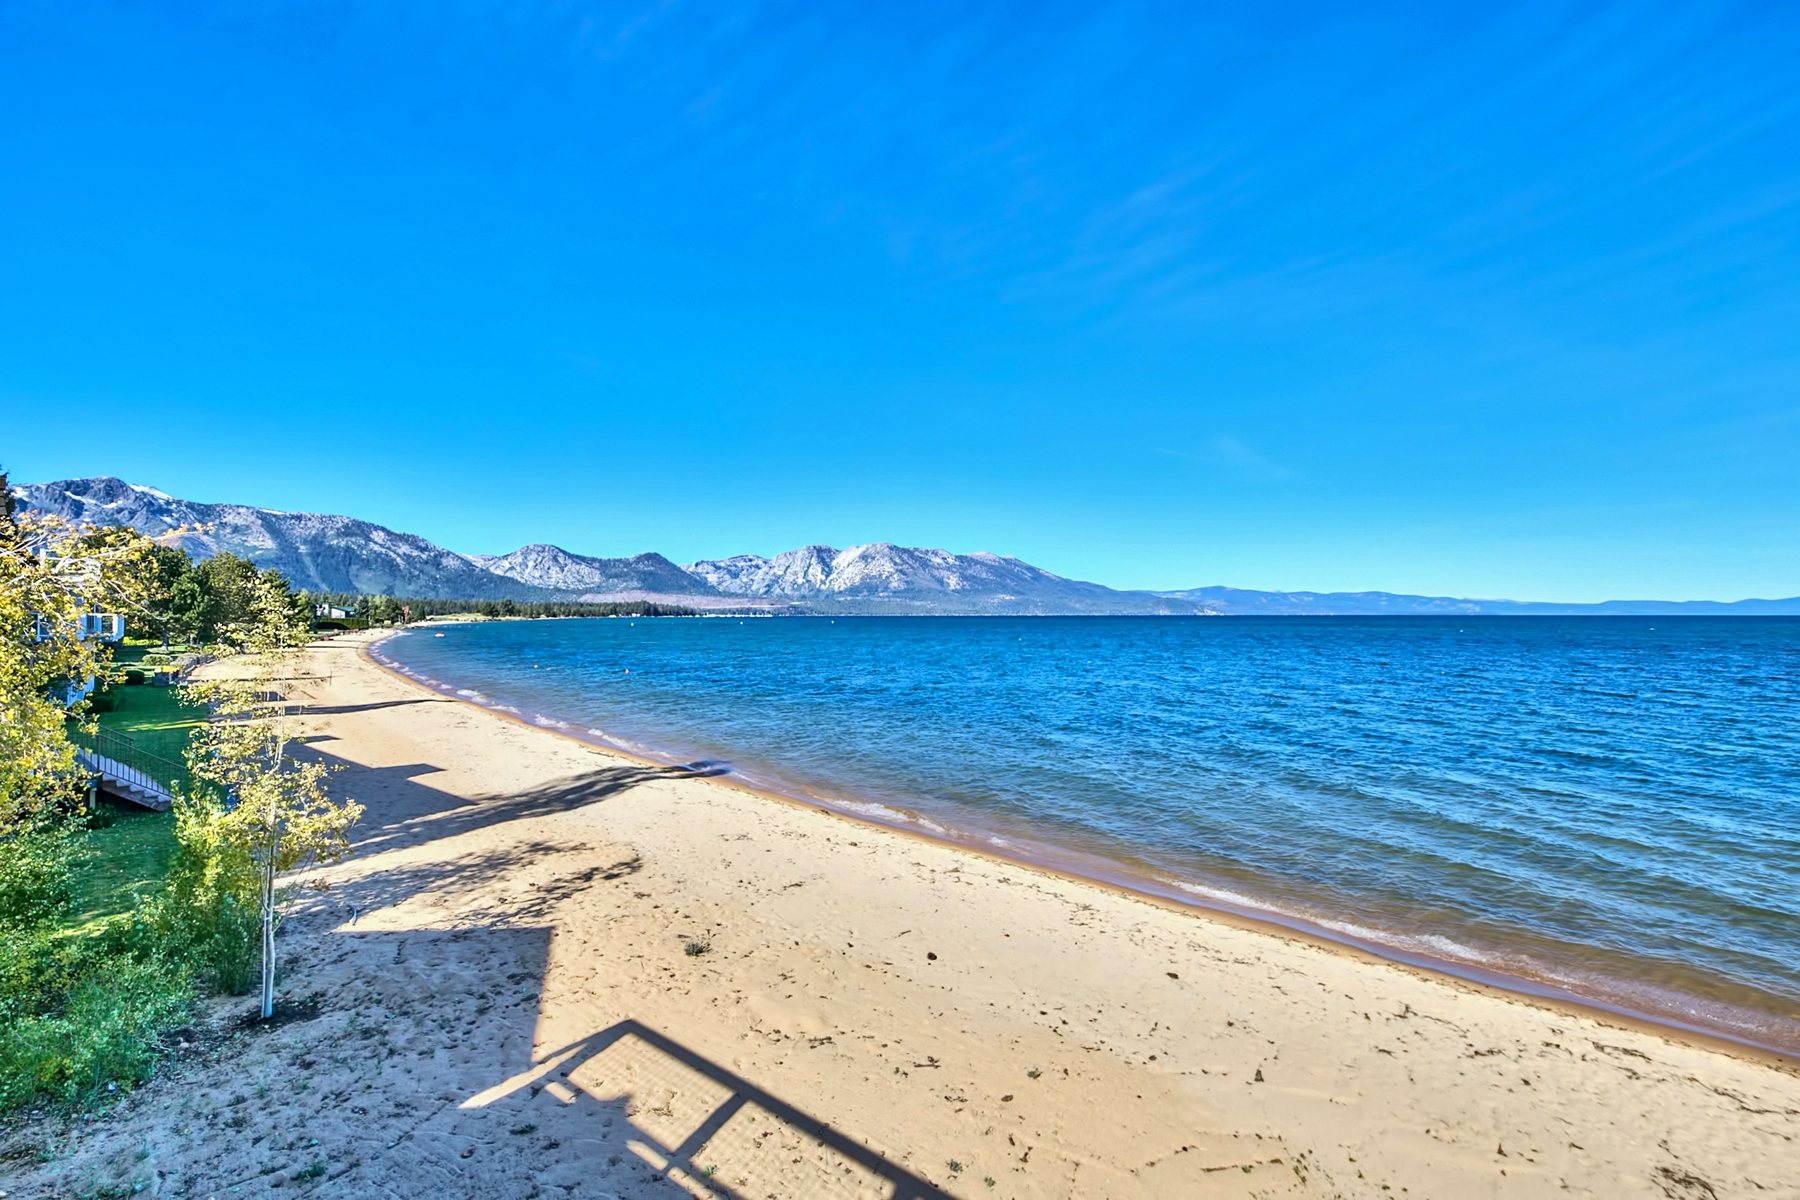 Additional photo for property listing at 319 Beach Drive South Lake Tahoe California, 96150 319 Beach Drive South Lake Tahoe, California 96150 Estados Unidos